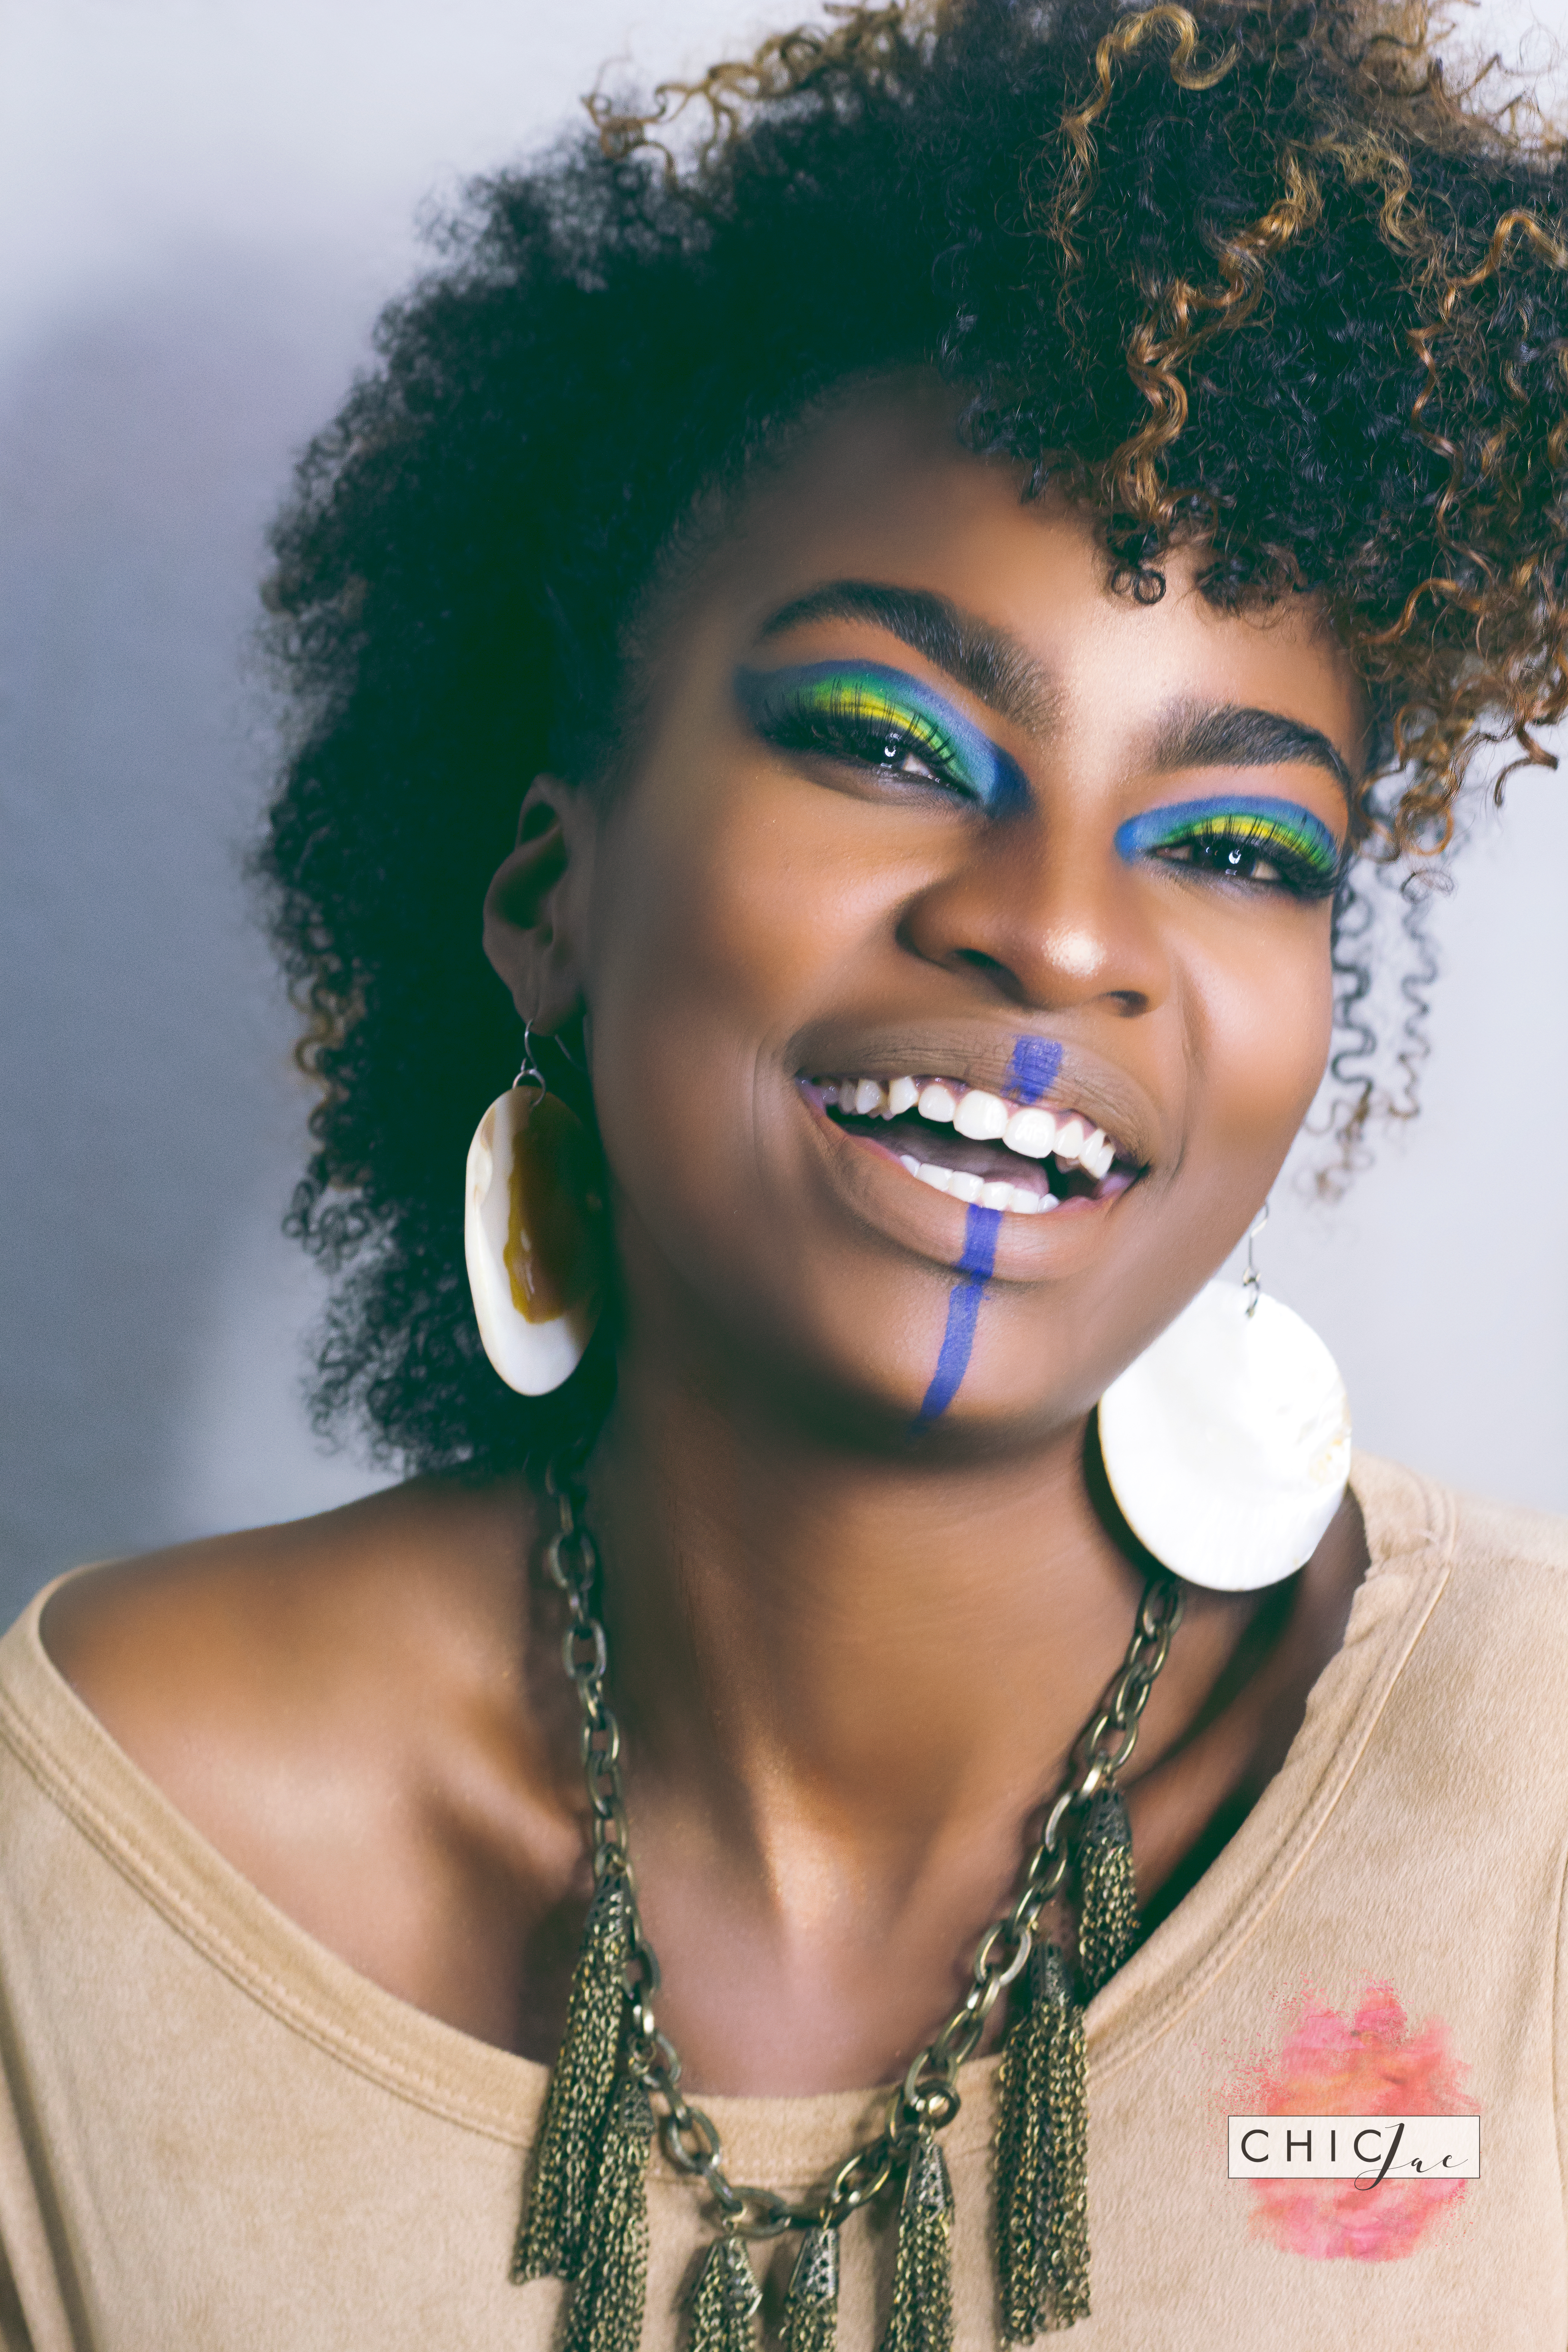 Book now to build a MUA, model, or other talent portfolio with Chic Jae!